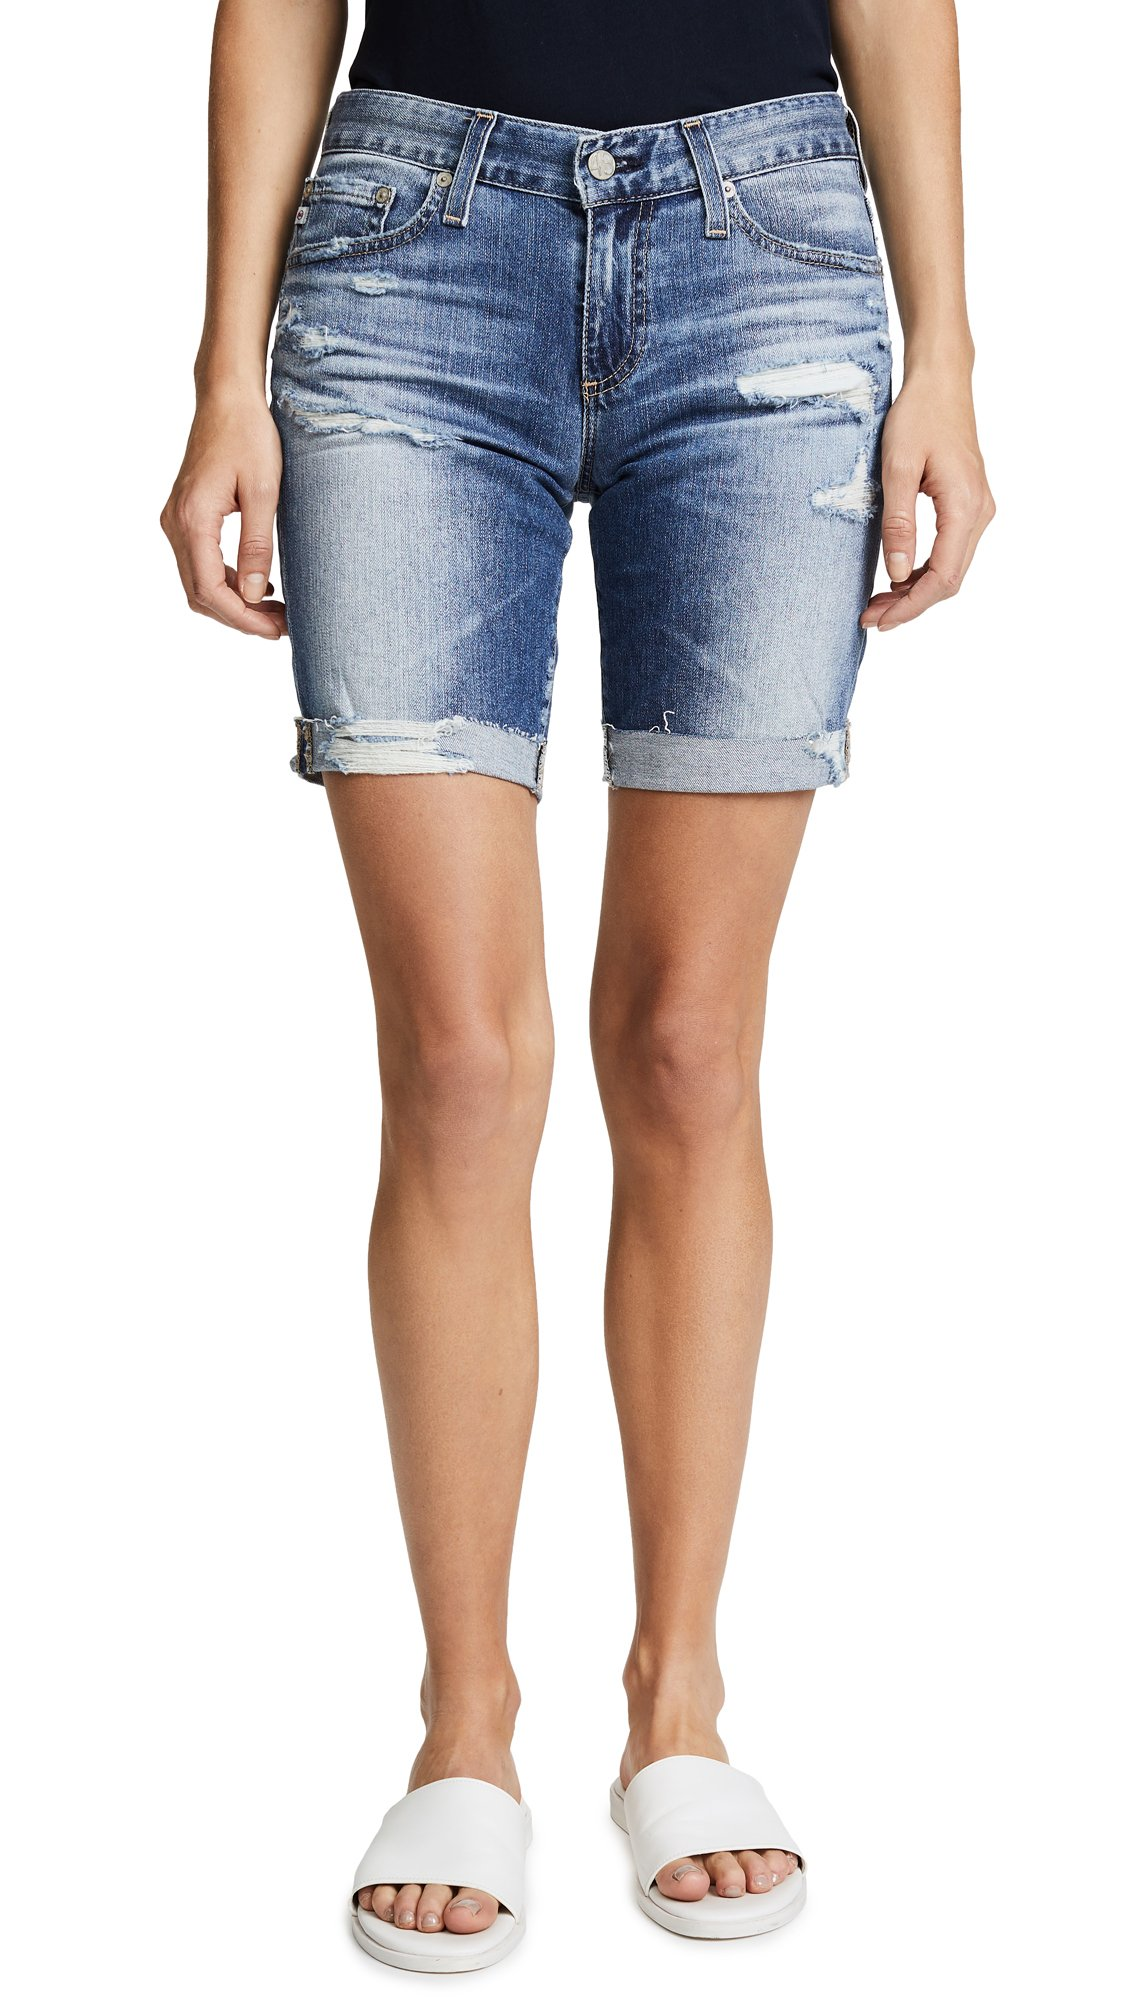 AG Adriano Goldschmied Women's Nikki Denim Short, 16 Years Indigo Deluge Destruc, 24